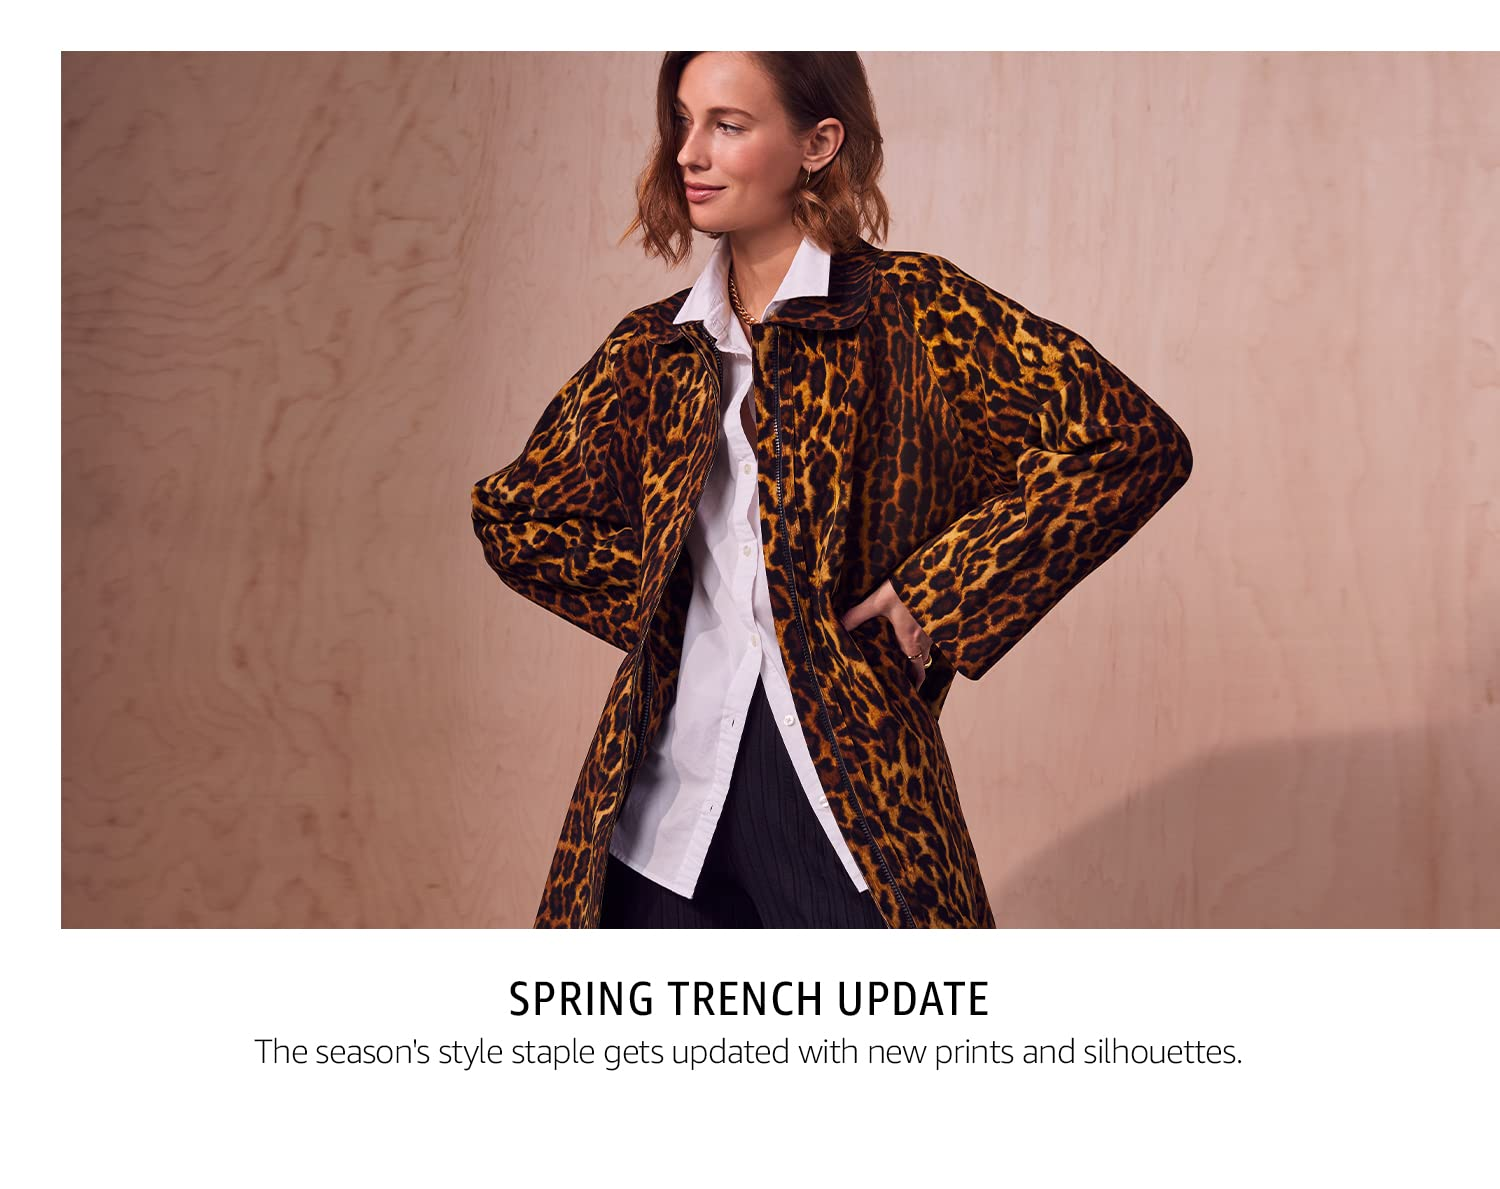 Spring Trench Update